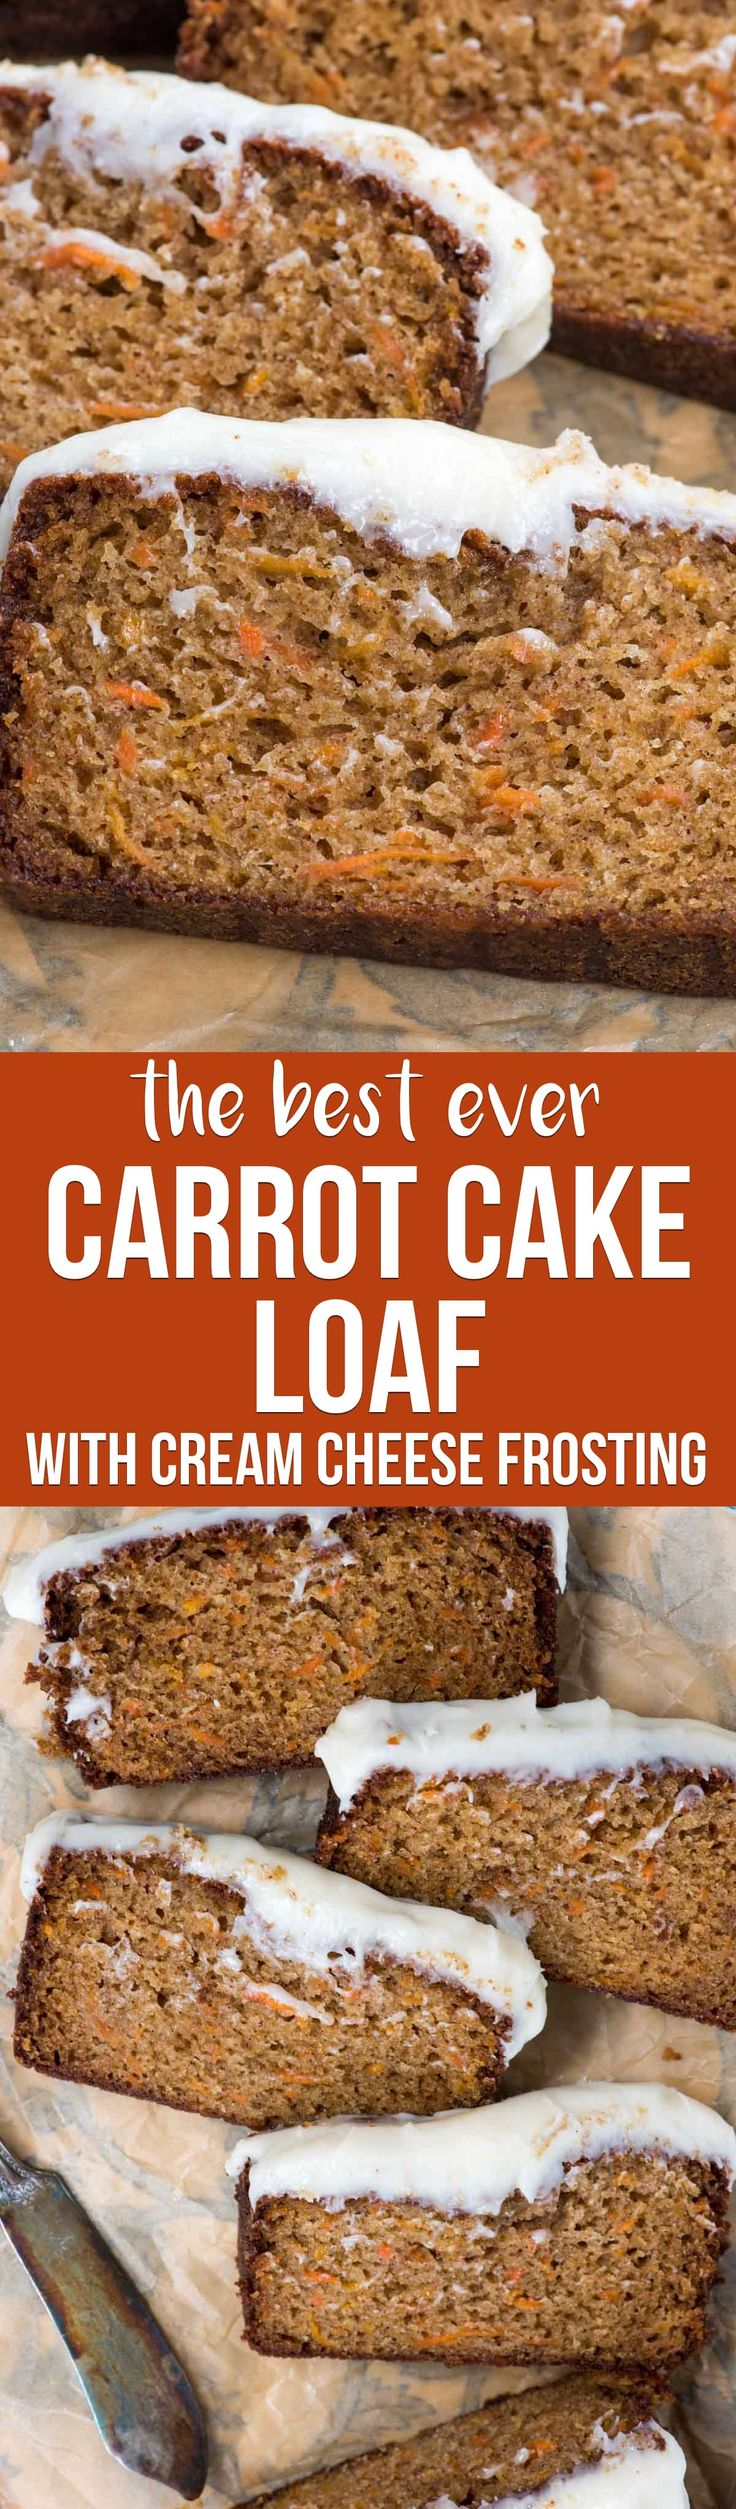 This is the BEST Carrot Cake Loaf Cake you'll ever make. It's soft and FULL of carrot cake flavor with a delicious cream cheese frosting! via @crazyforcrust